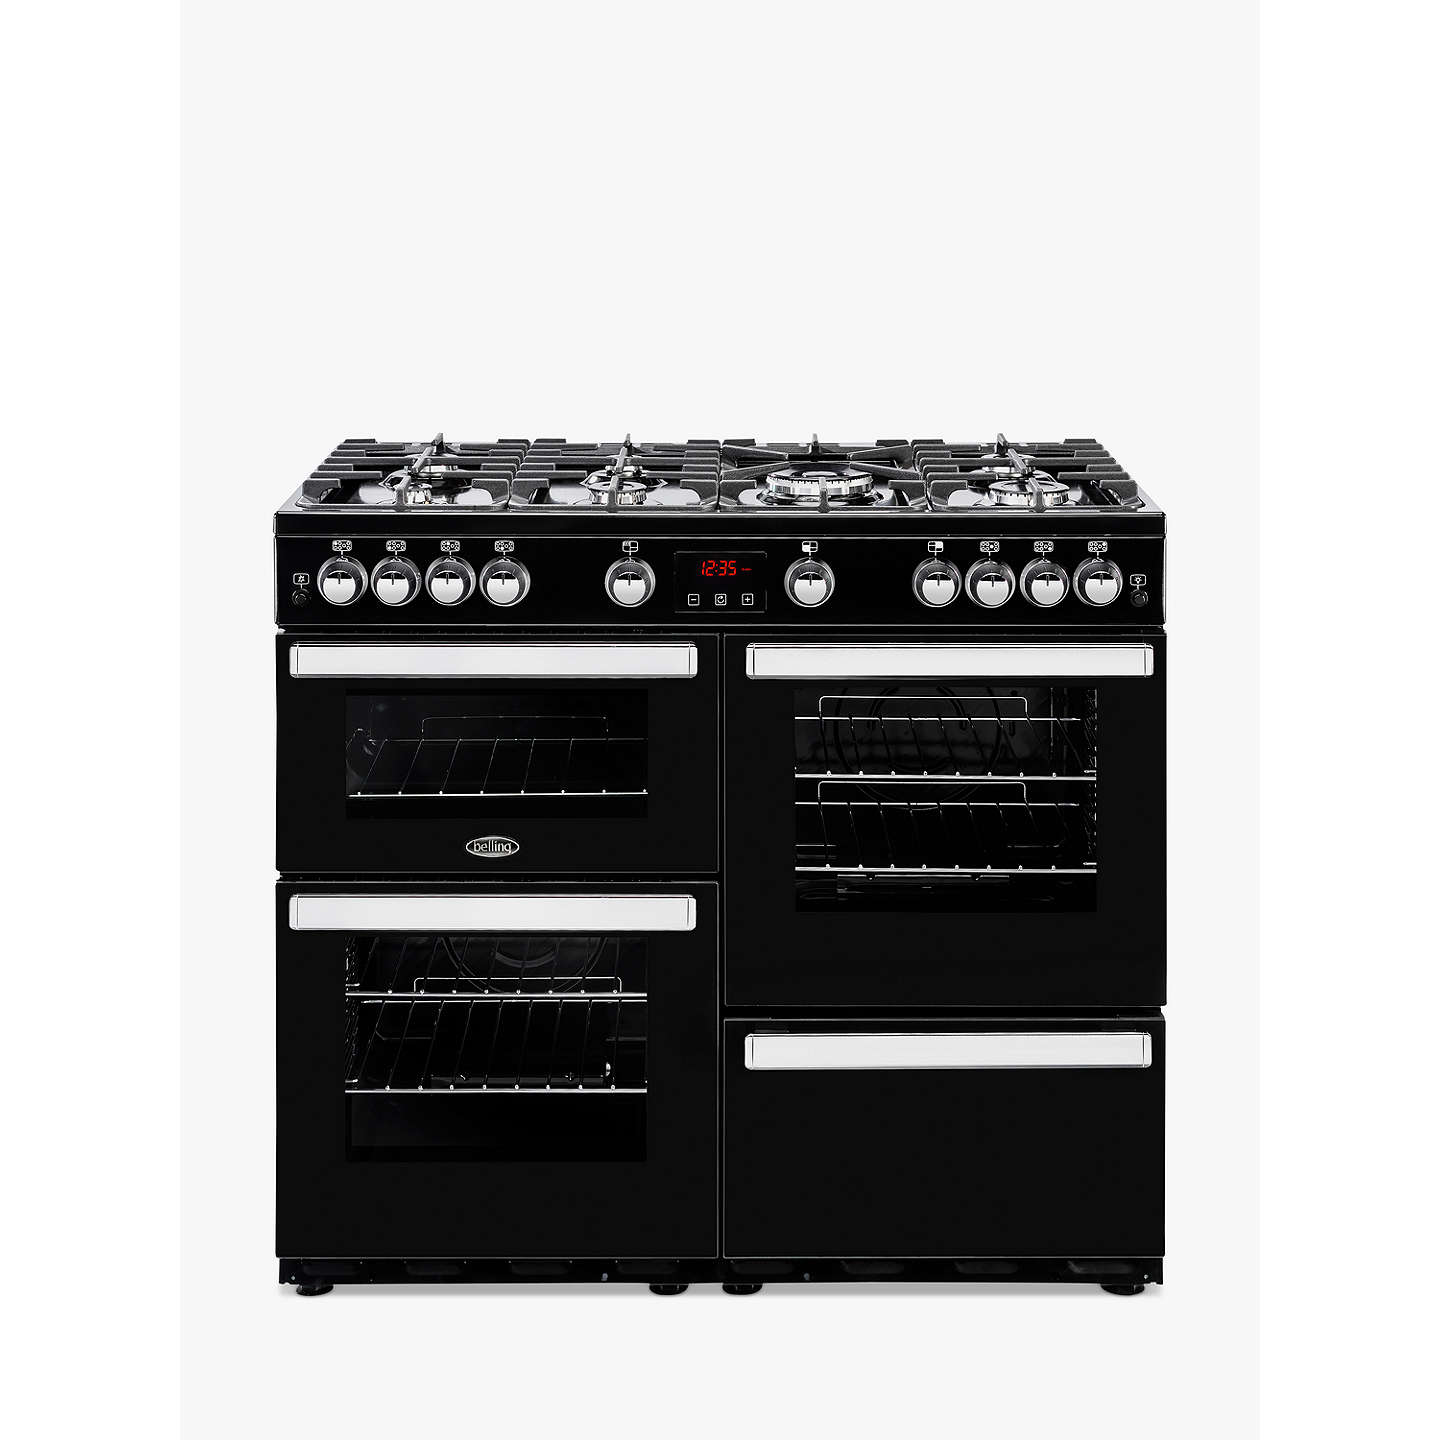 BuyBelling Cookcentre 100G Gas Range Cooker, Black Online at johnlewis.com